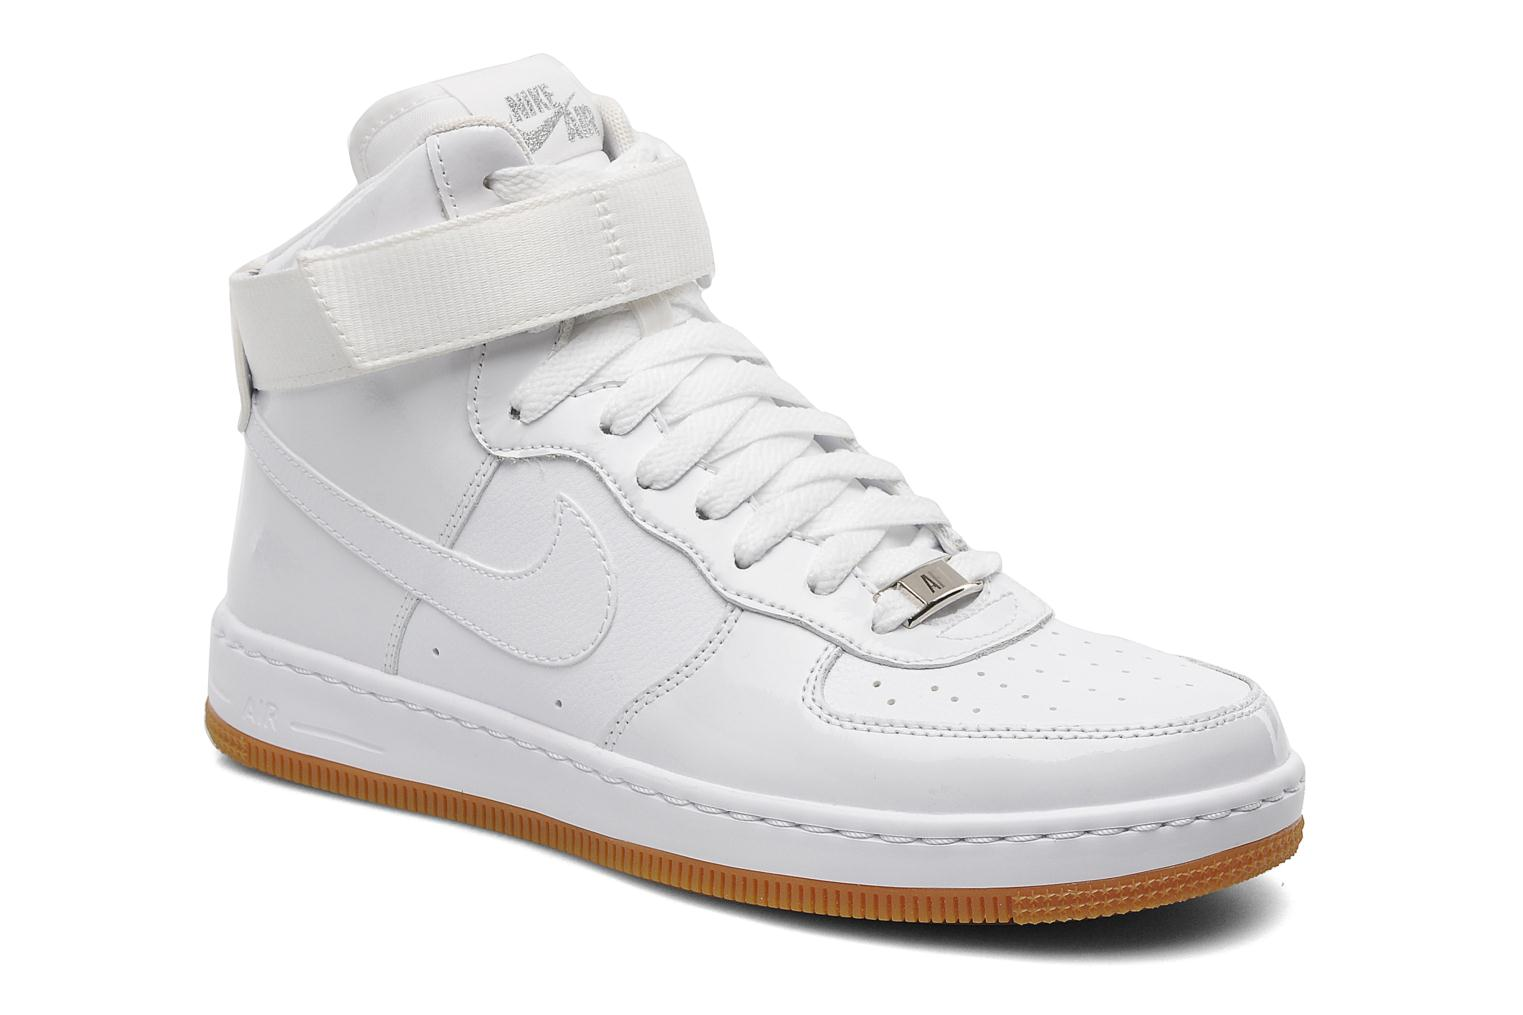 new concept cc2ed 7a037 Sneakers Nike - W Nike Air Force 1 Ultra Force Mid